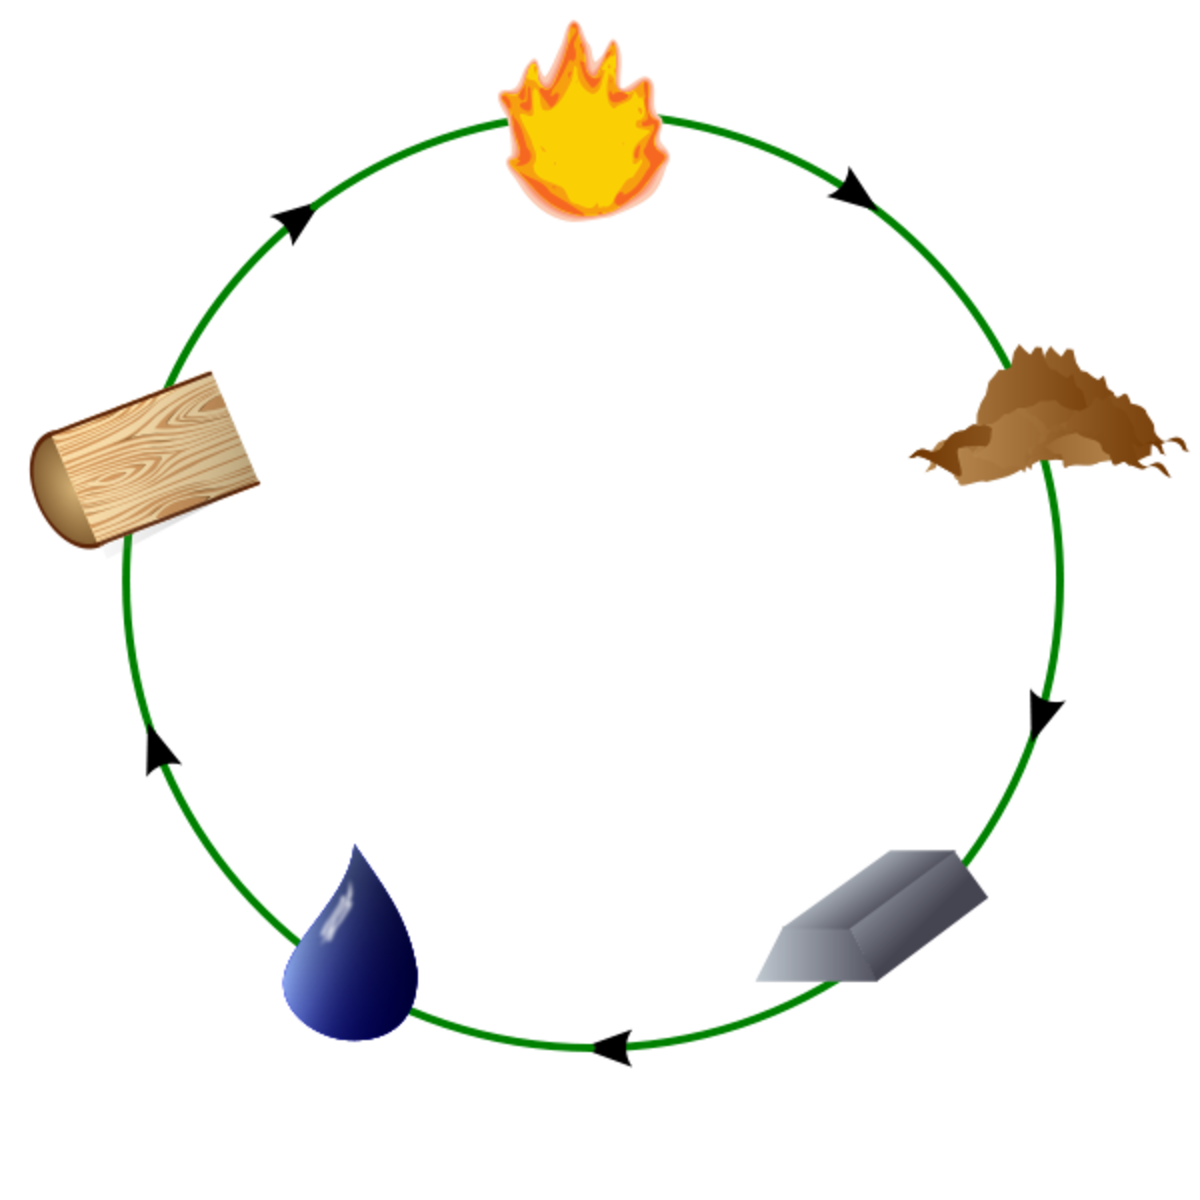 Productive Cycle of Elements